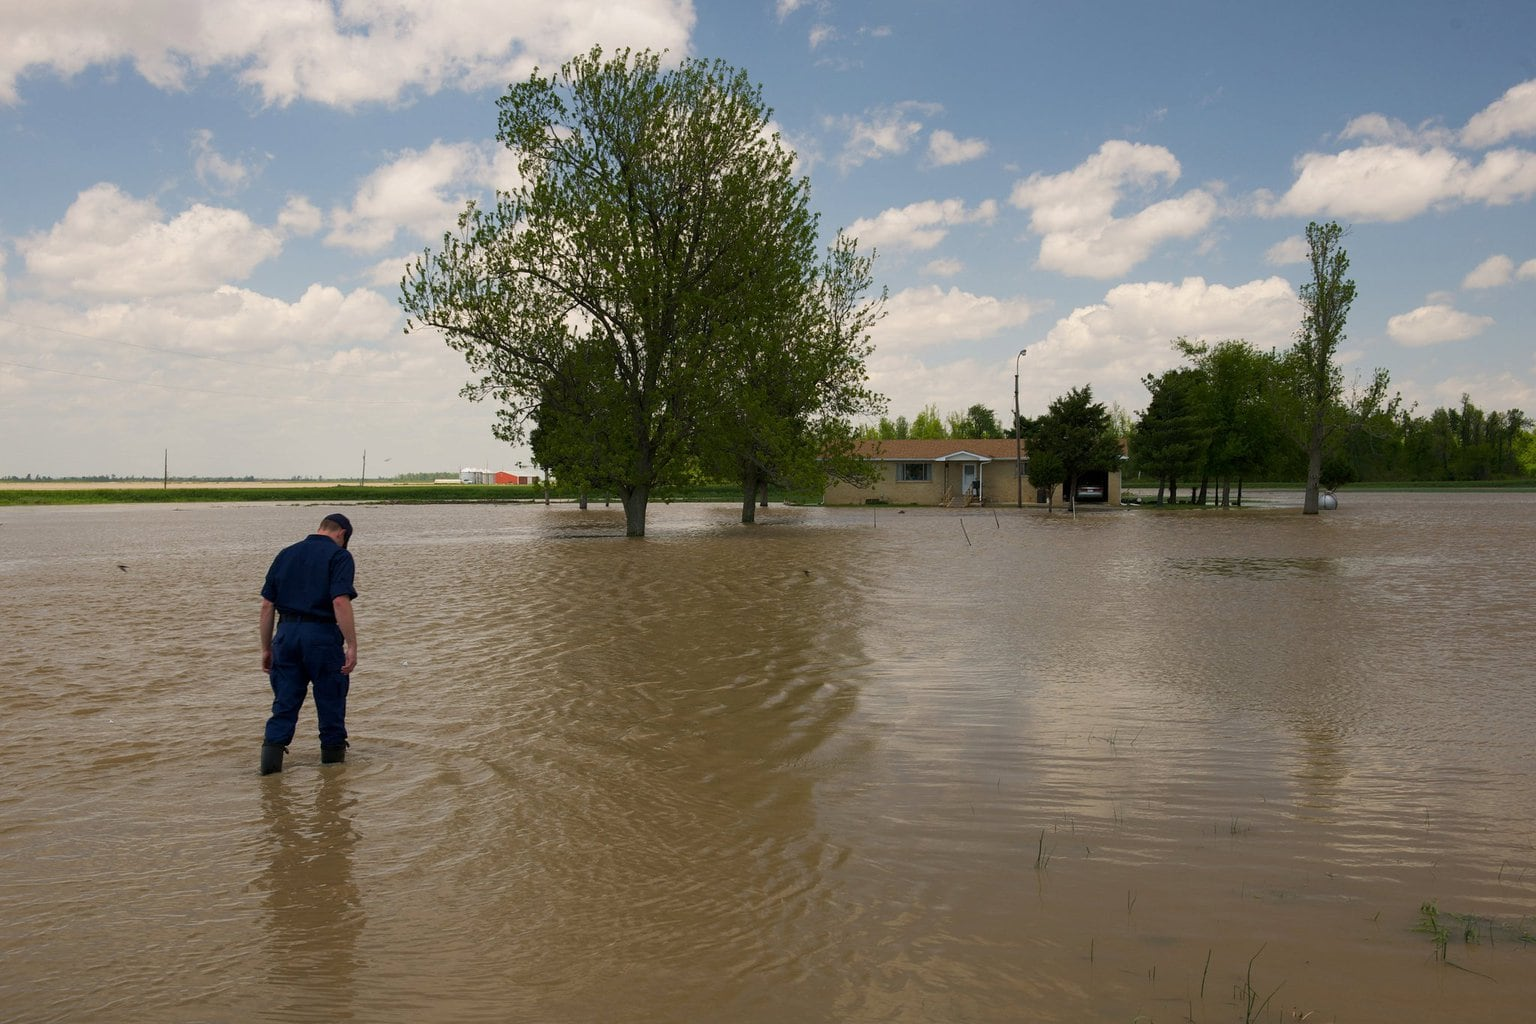 Flooding is one of the most common and costly natural disasters in the U.S.